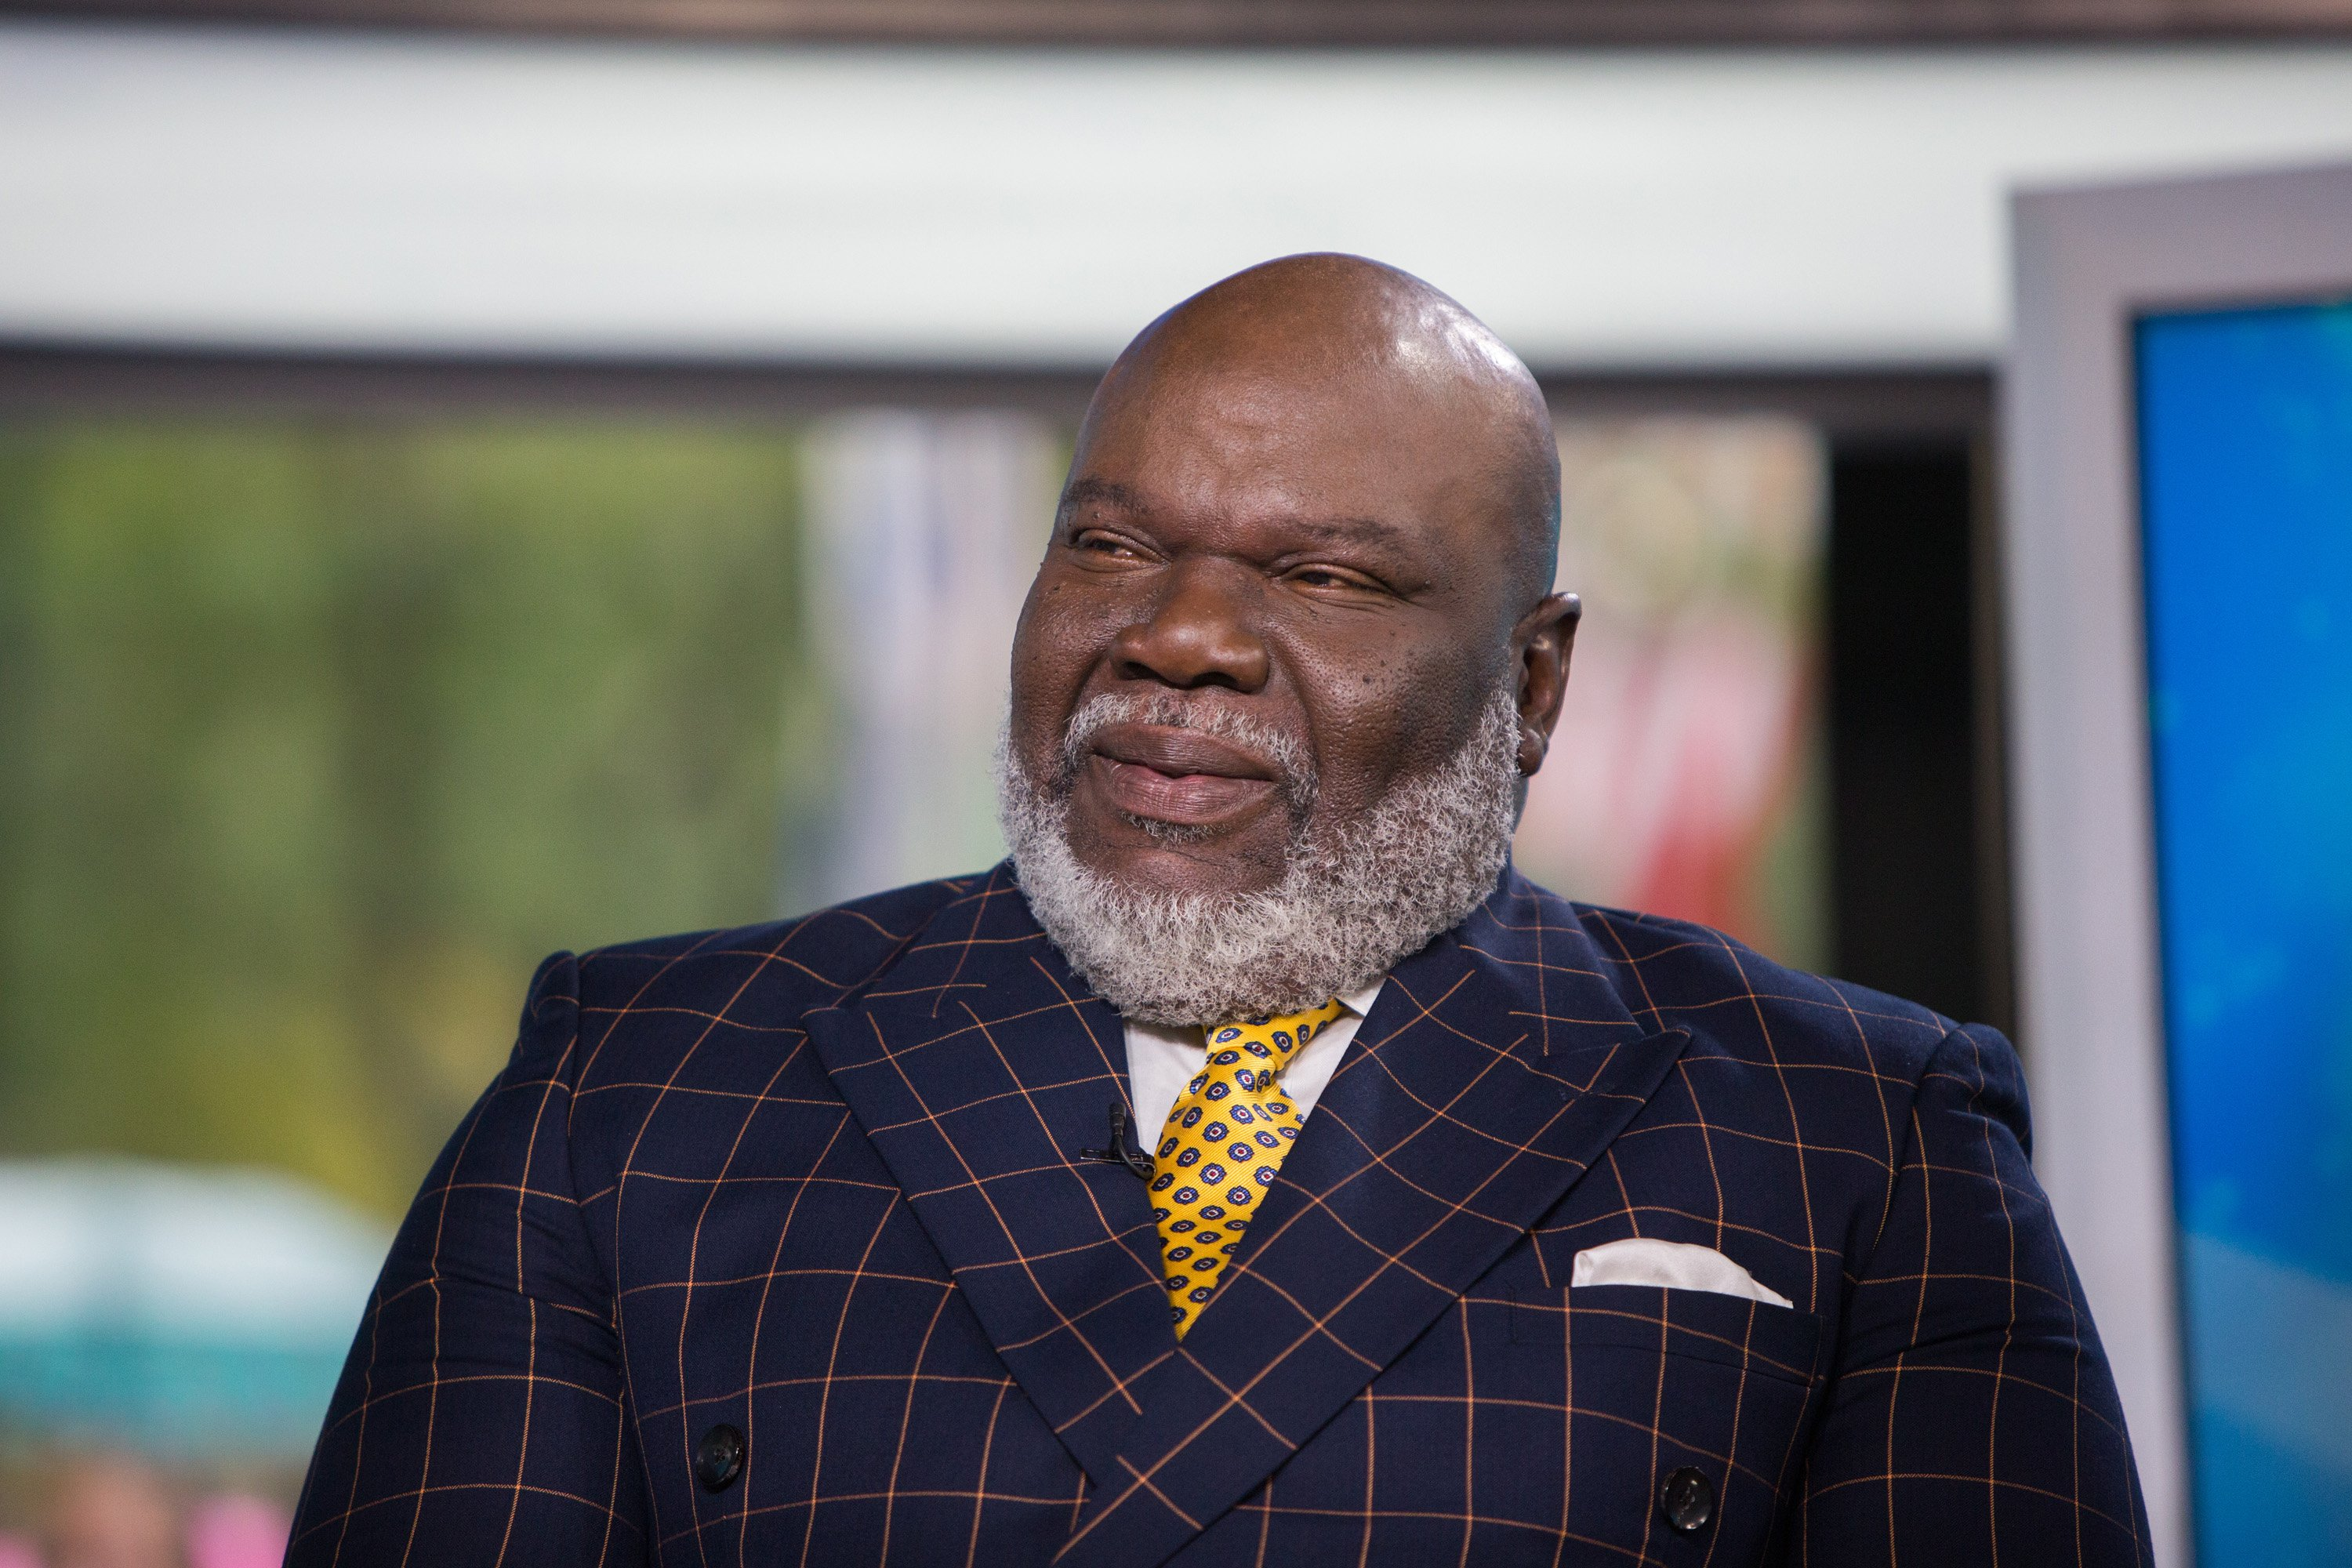 Bishop T.D. Jakes on Monday, October 9, 2017 | Source: Getty Images